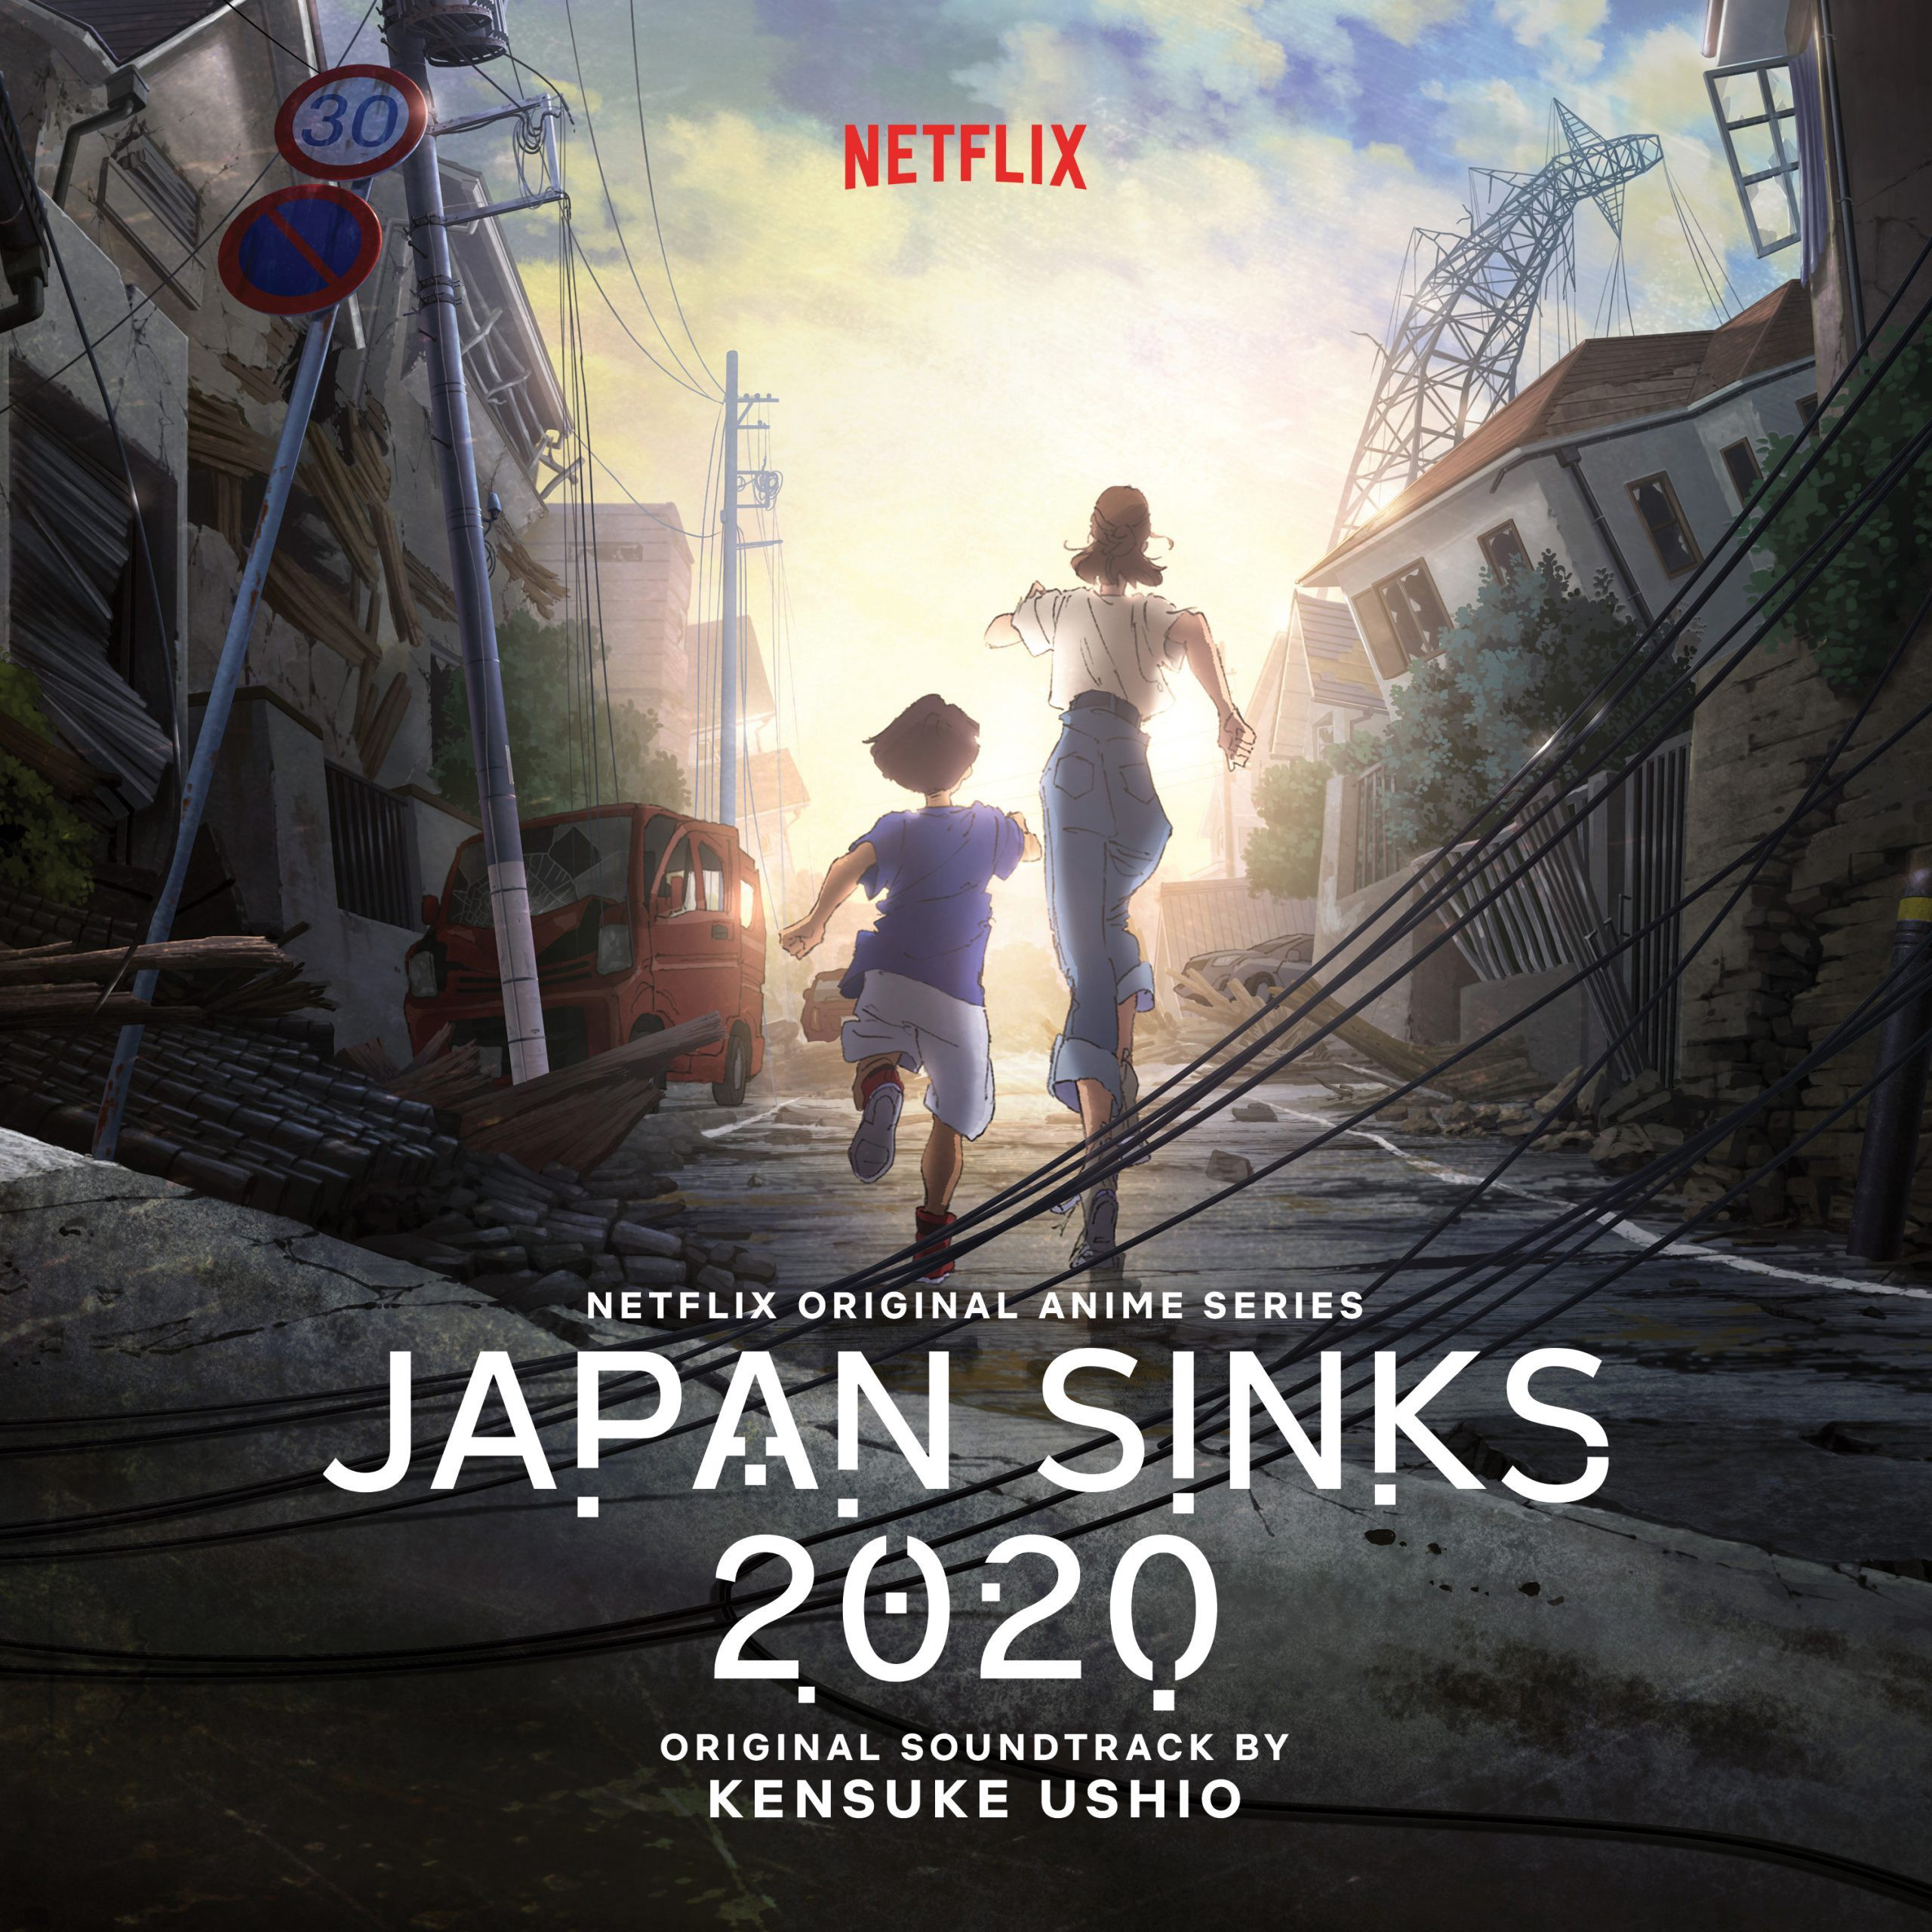 A 4 Min Diary My Thoughts On Japan Sinks 2020 By Xq The Eden Of Xq Medium